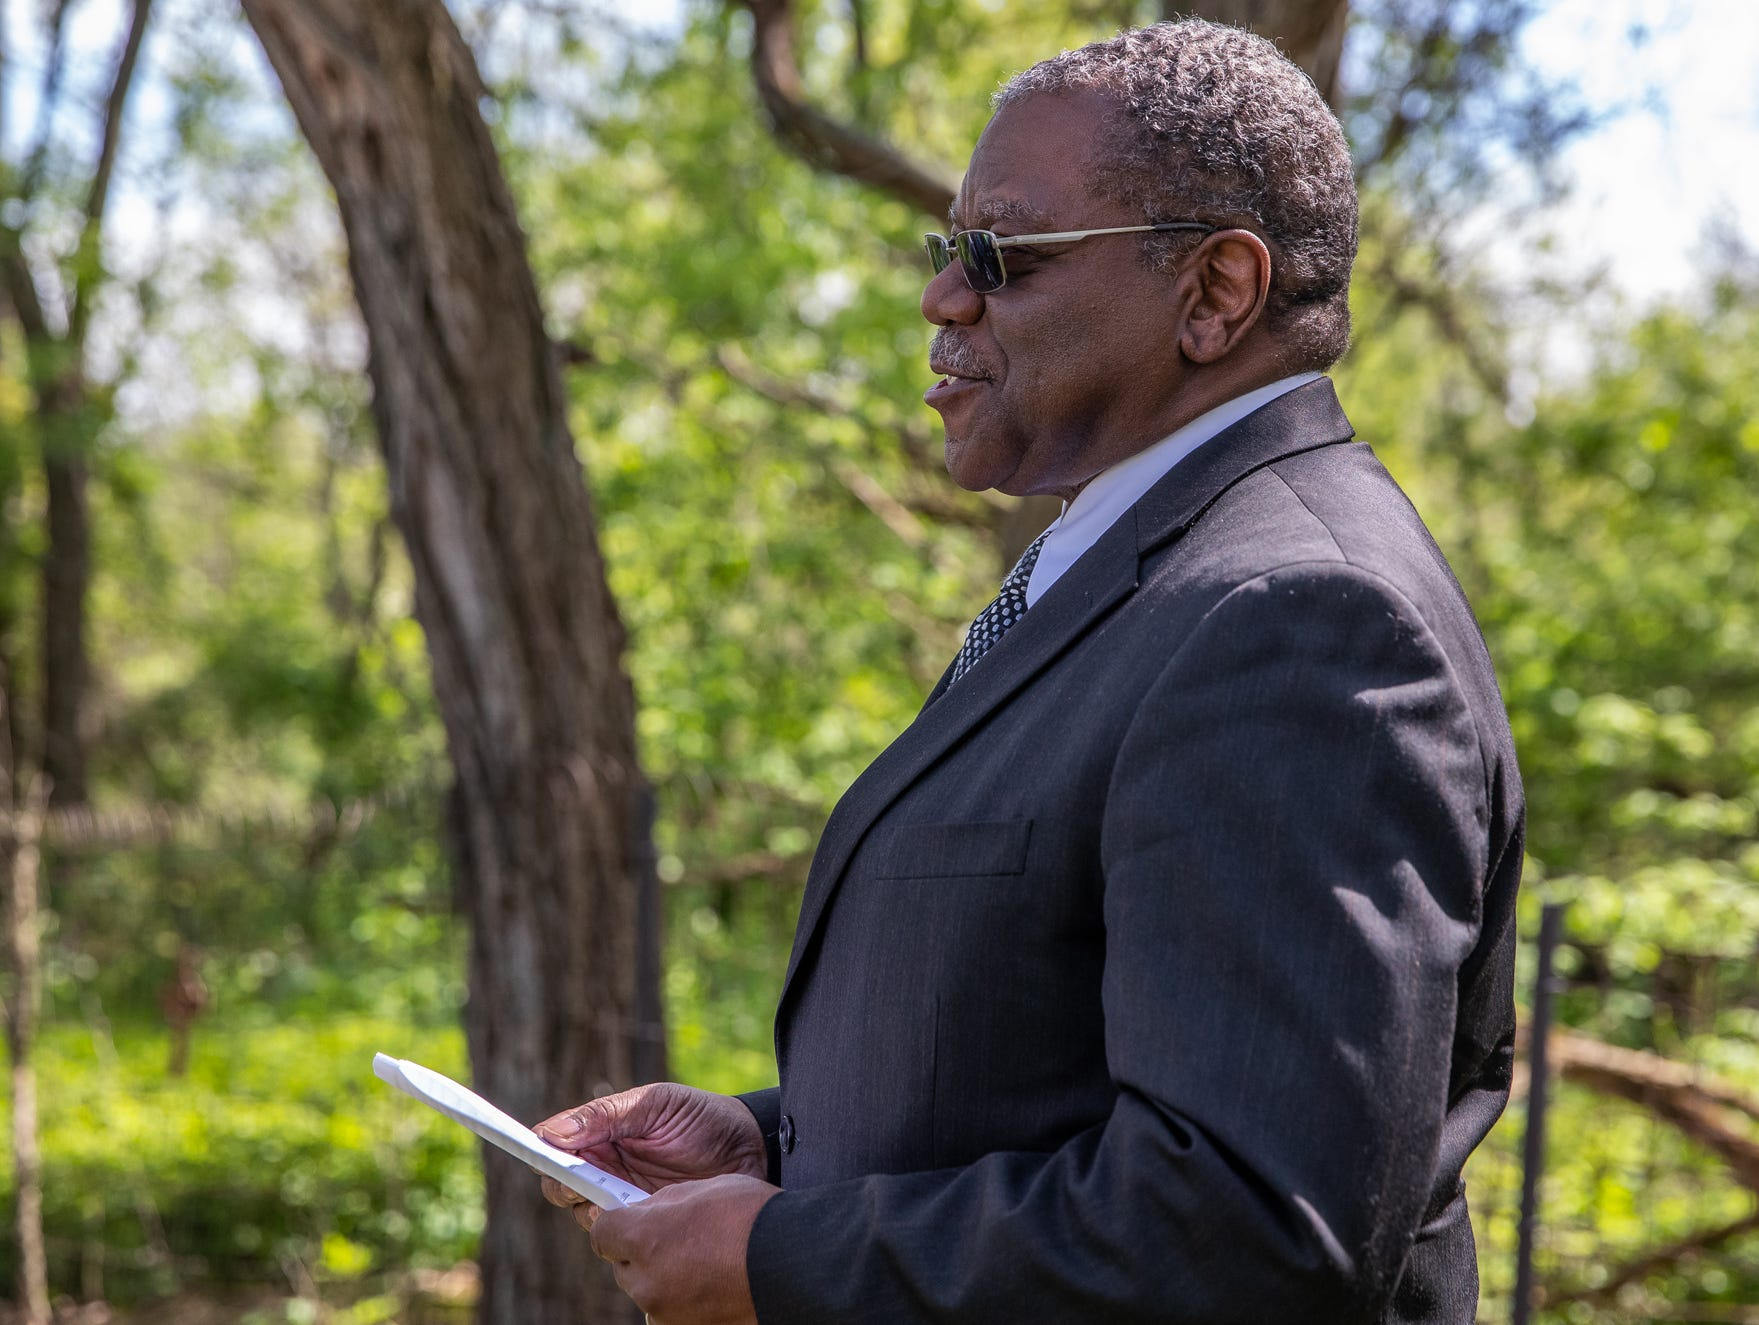 """Pastor James Foster speaks during a small ceremony for former slave Price Joyce on Saturday, May 11, 2019. """"Jeff, thank you for your great sensitivity,"""" said Foster, to Jeff Purvis, great-great-great-grandson of Alexander Joyce II, Price's previous owner who brought him to Indiana from Virginia. """"You gave me the honor to preside over this special event after the thought came to you that Price would appreciate, maybe, a familiar face."""""""